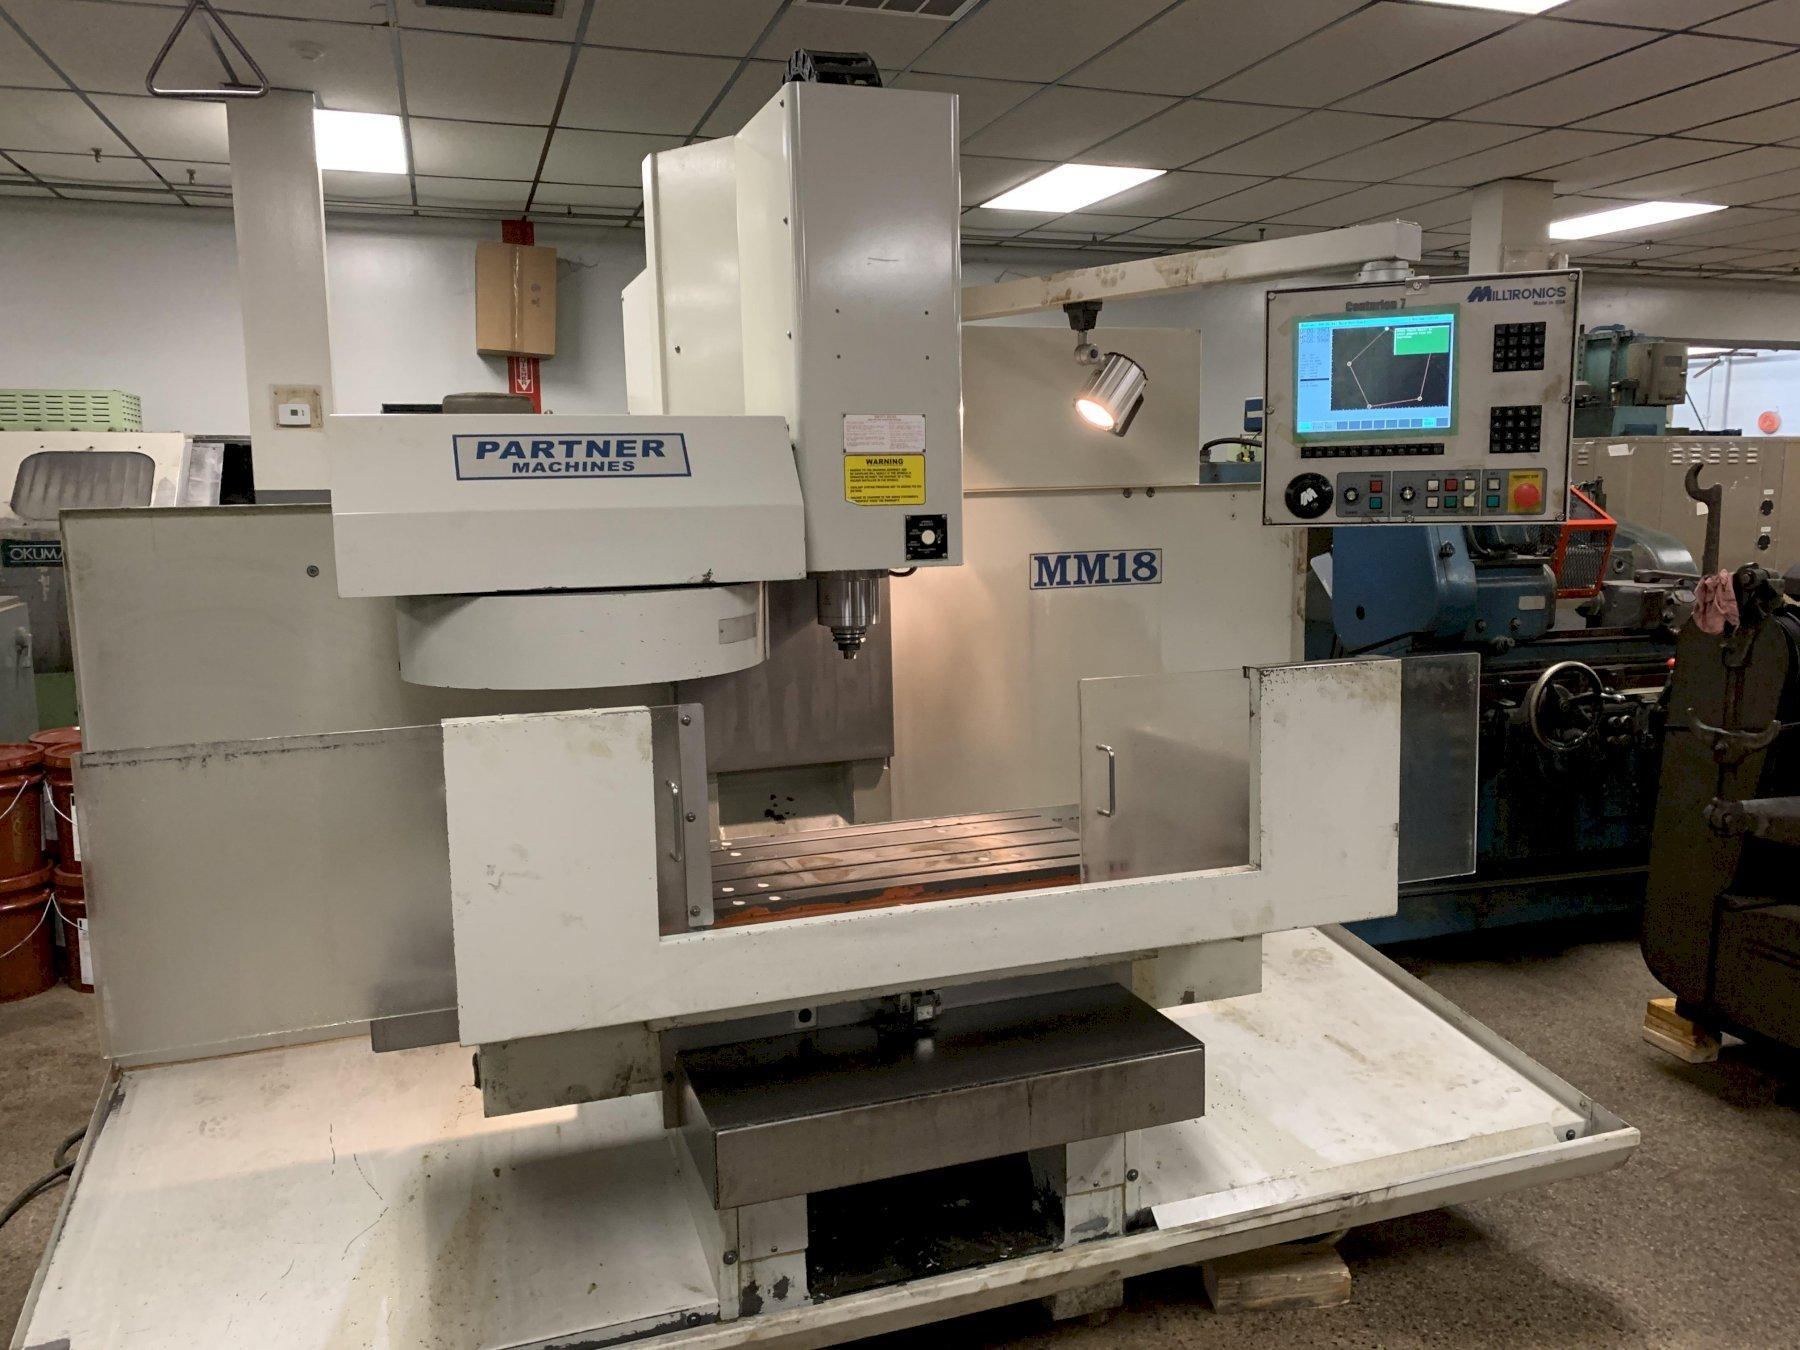 Milltronics Model MM18 CNC Vertical Machining Center, New 2007.